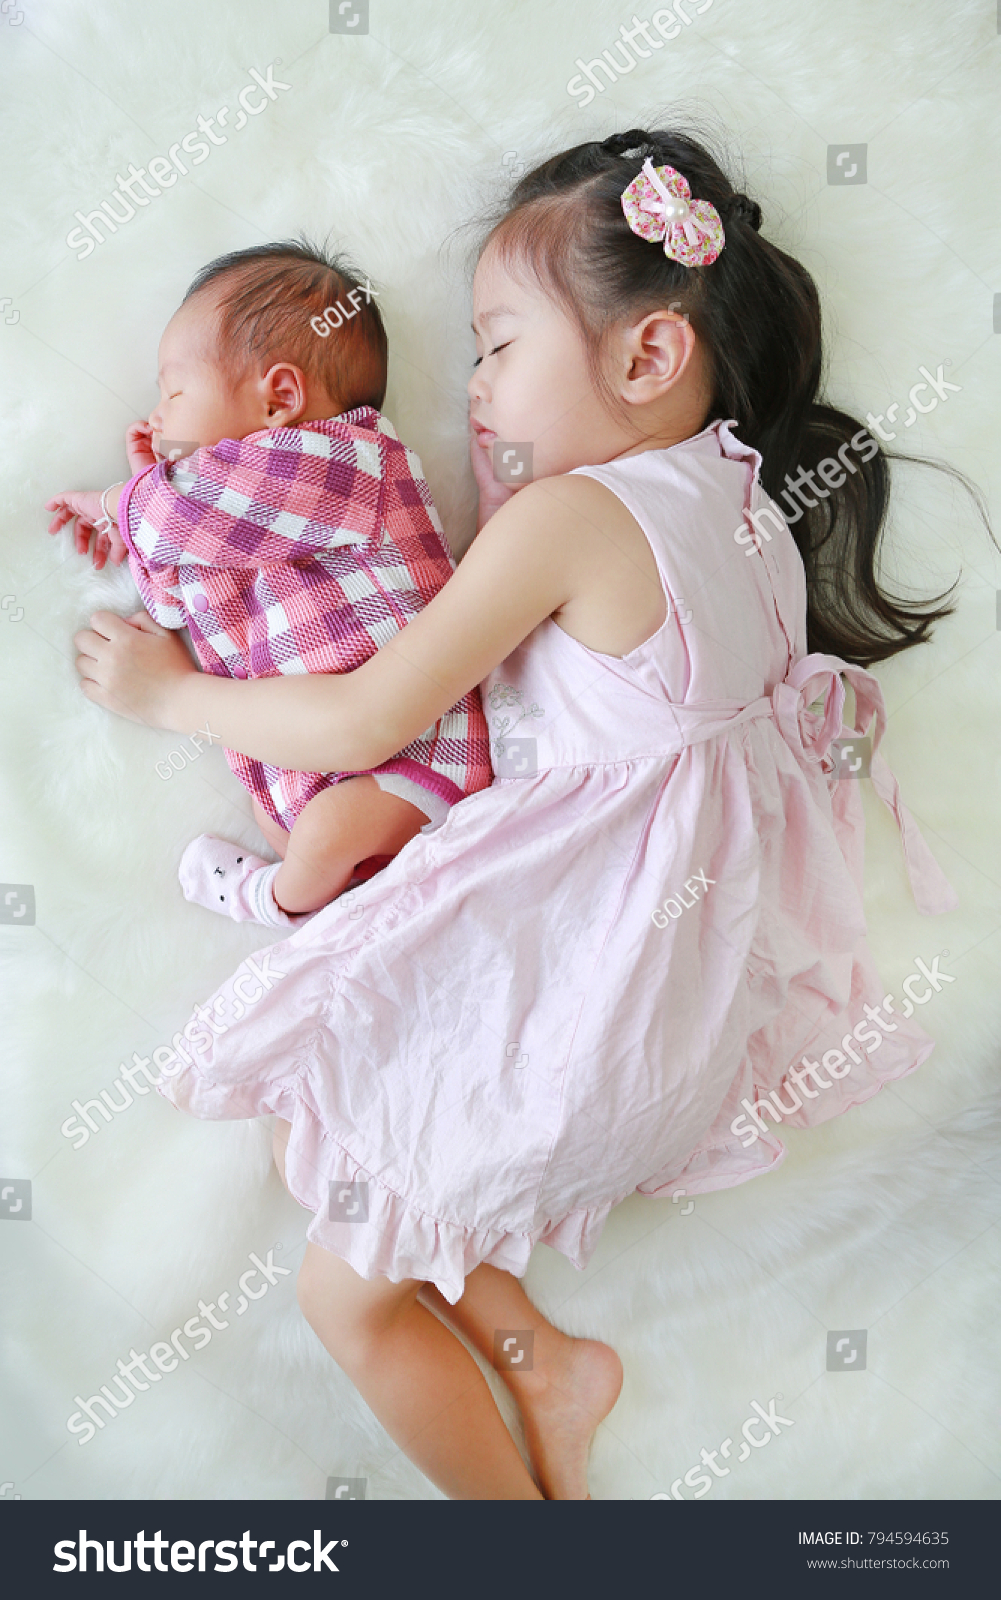 Cute Asian sister embracing sleeping newborn baby lying on white fur  background.